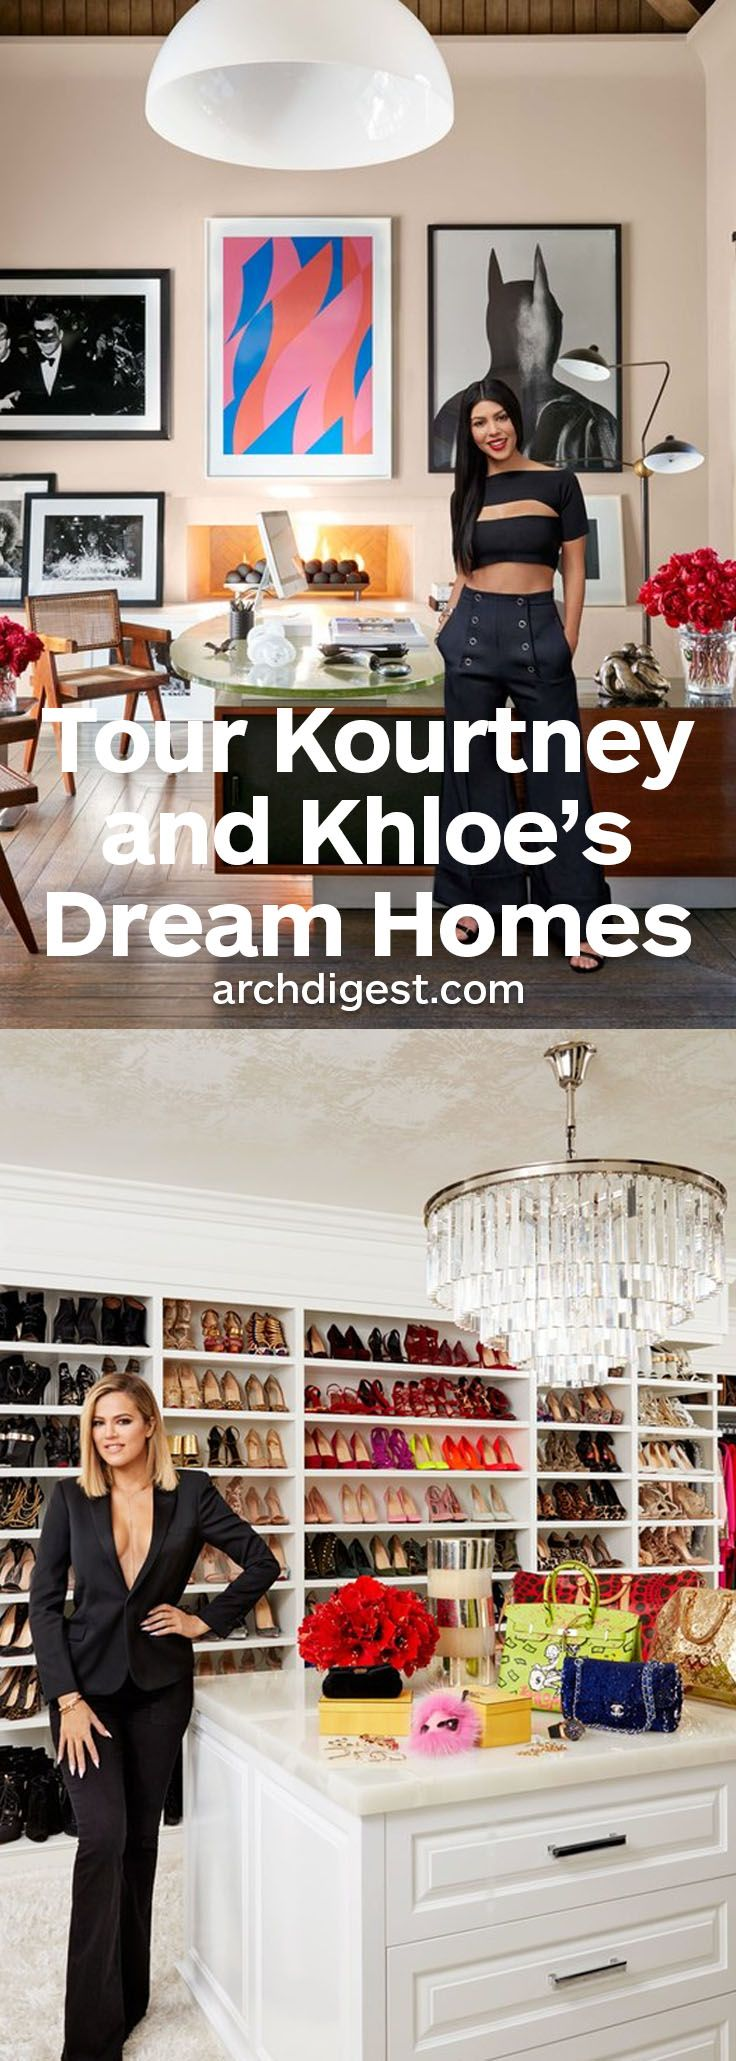 Khloé and Kourtney Kardashian share a TV show, a neighborhood, and even a decorator: the ingenious Martyn Lawrence Bullard. But when it comes to living, the celebrity siblings have their own distinctive styles | archdigest.com